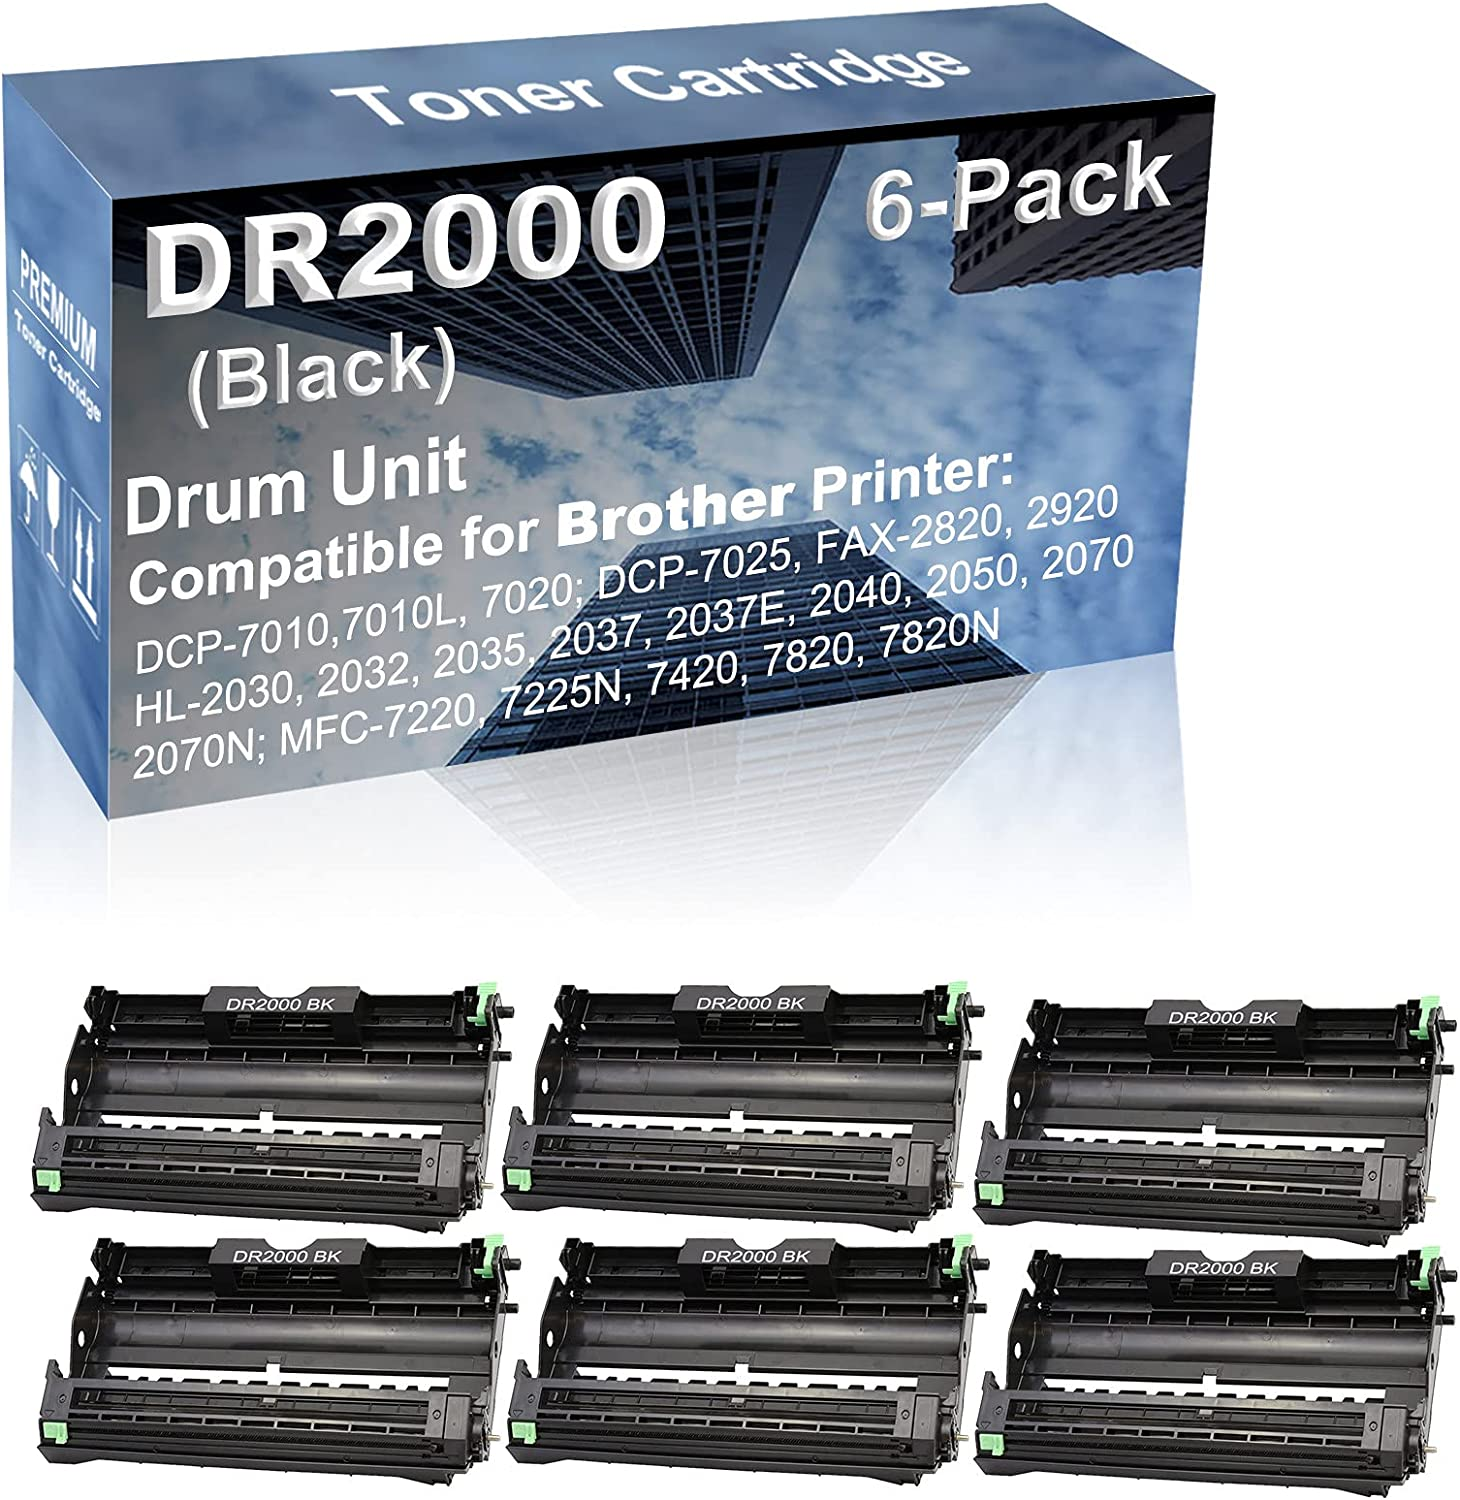 6-Pack Compatible DR2000 Drum Kit use for Brother DCP-7010, DCP-7010L, DCP-7020, DCP-7025, FAX-2820, FAX-2920, HL-2030 Printer (Black)